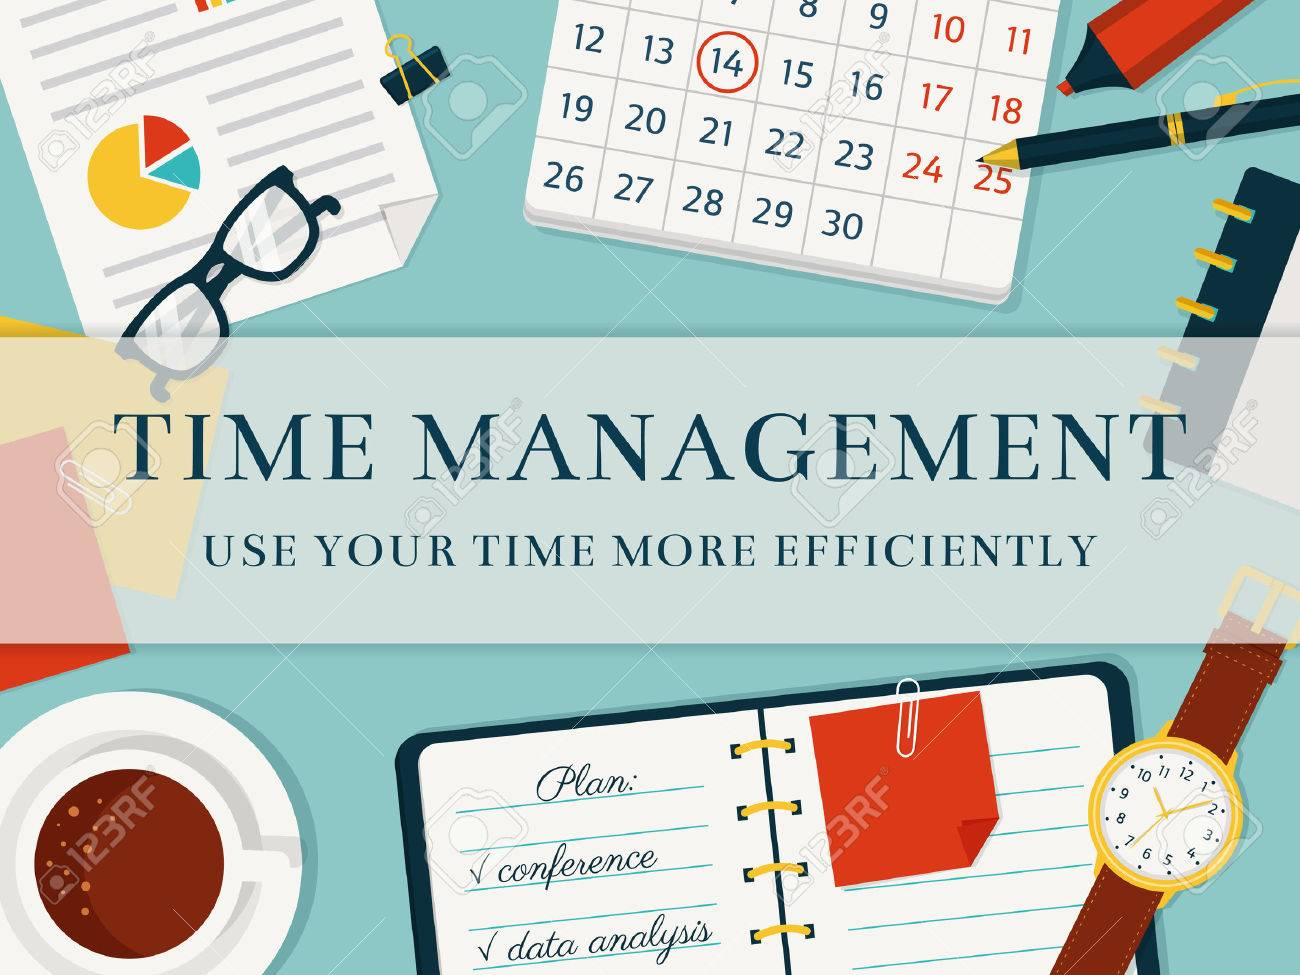 Time Management Banner Efficient Use Of Time For Implementation Royalty Free Cliparts Vectors And Stock Illustration Image 51911957